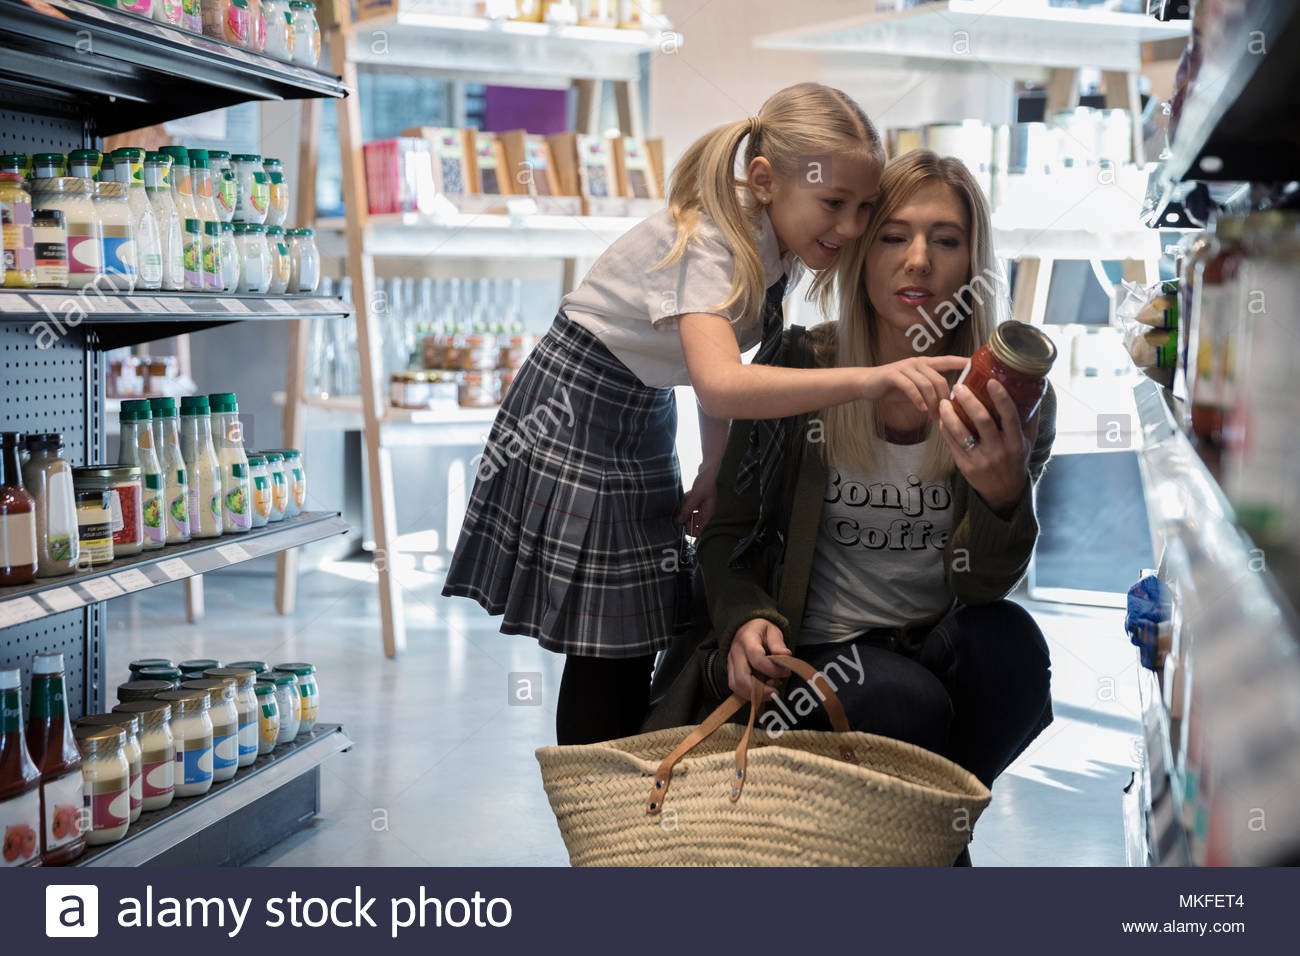 Mother and daughter in school uniform grocery shopping, reading label on can in market aisle - Stock Image